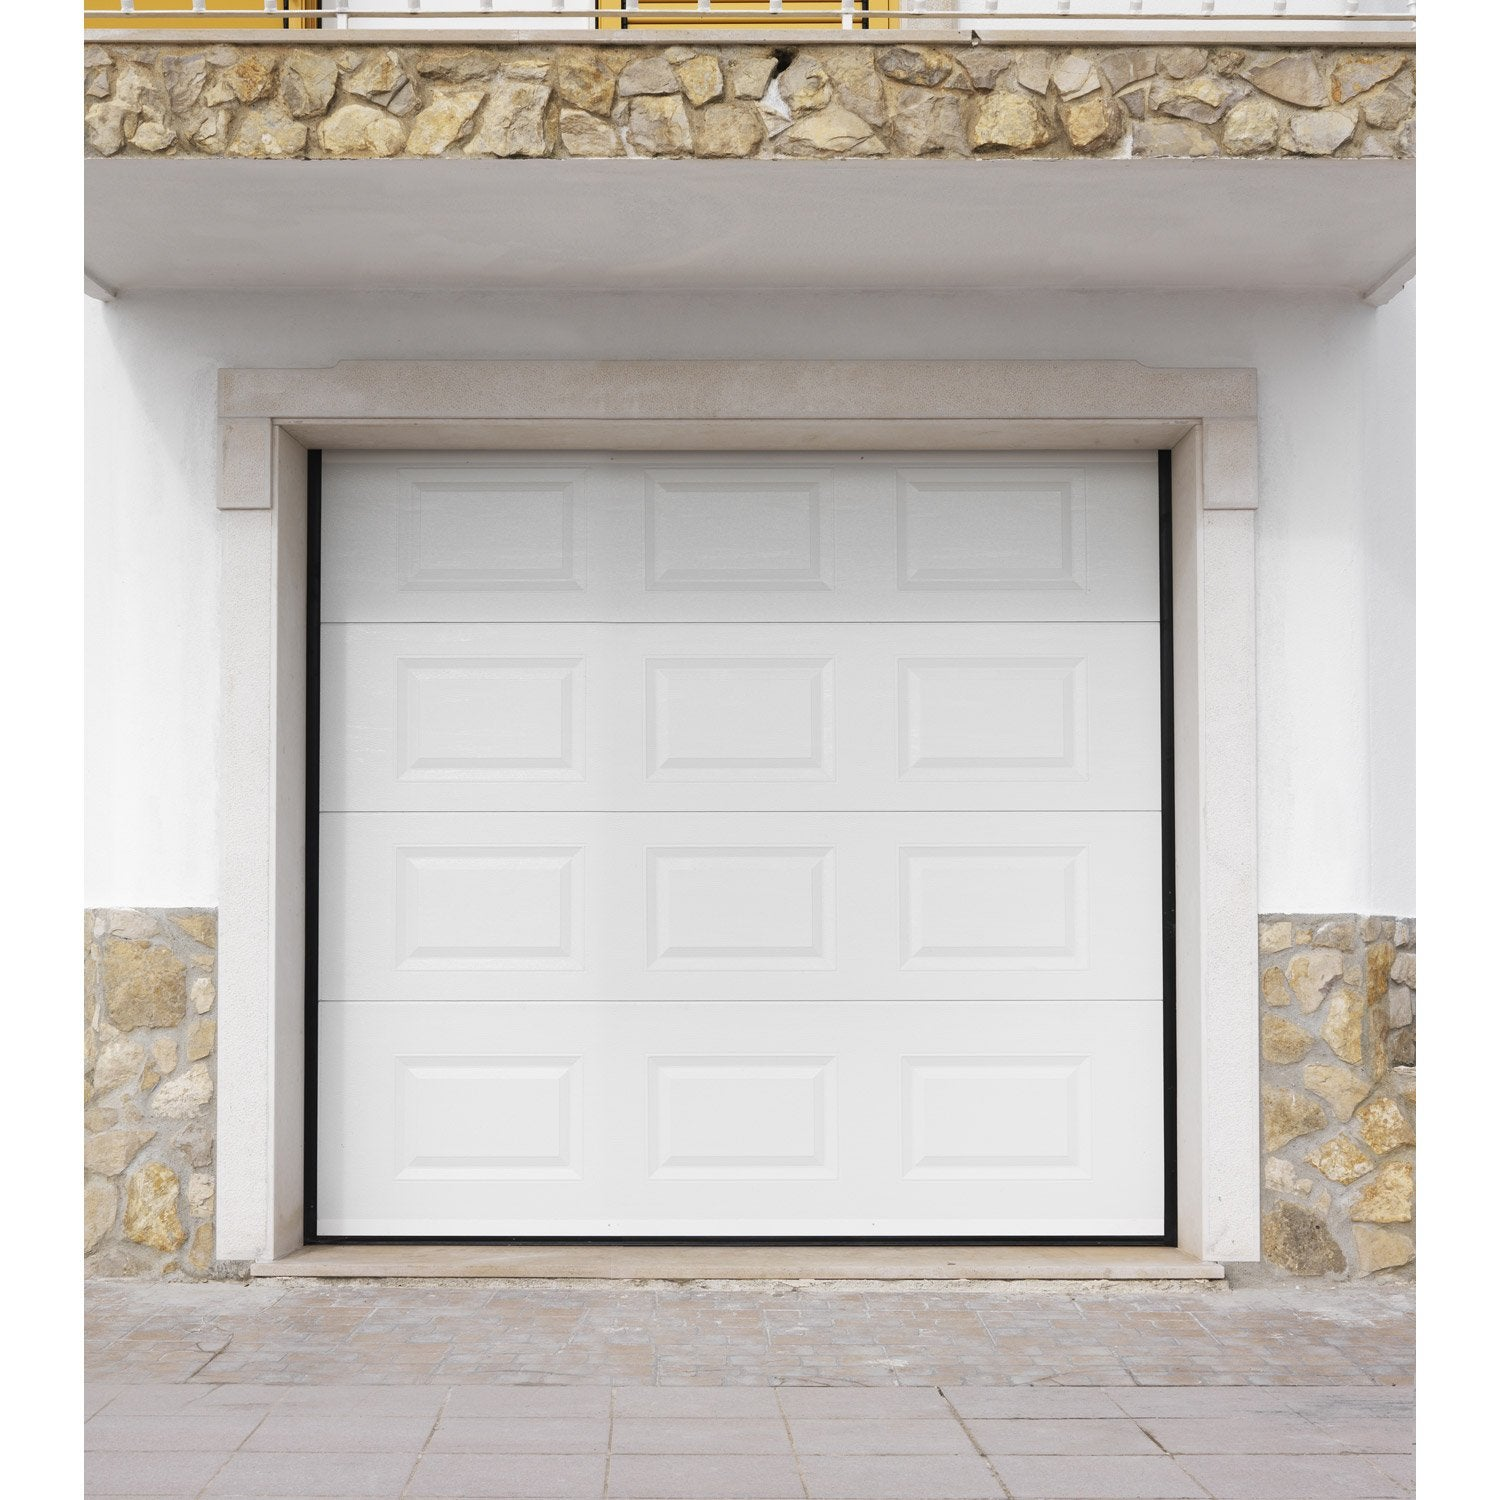 porte de garage sectionnelle artens h200 x l240 cm With porte garage artens